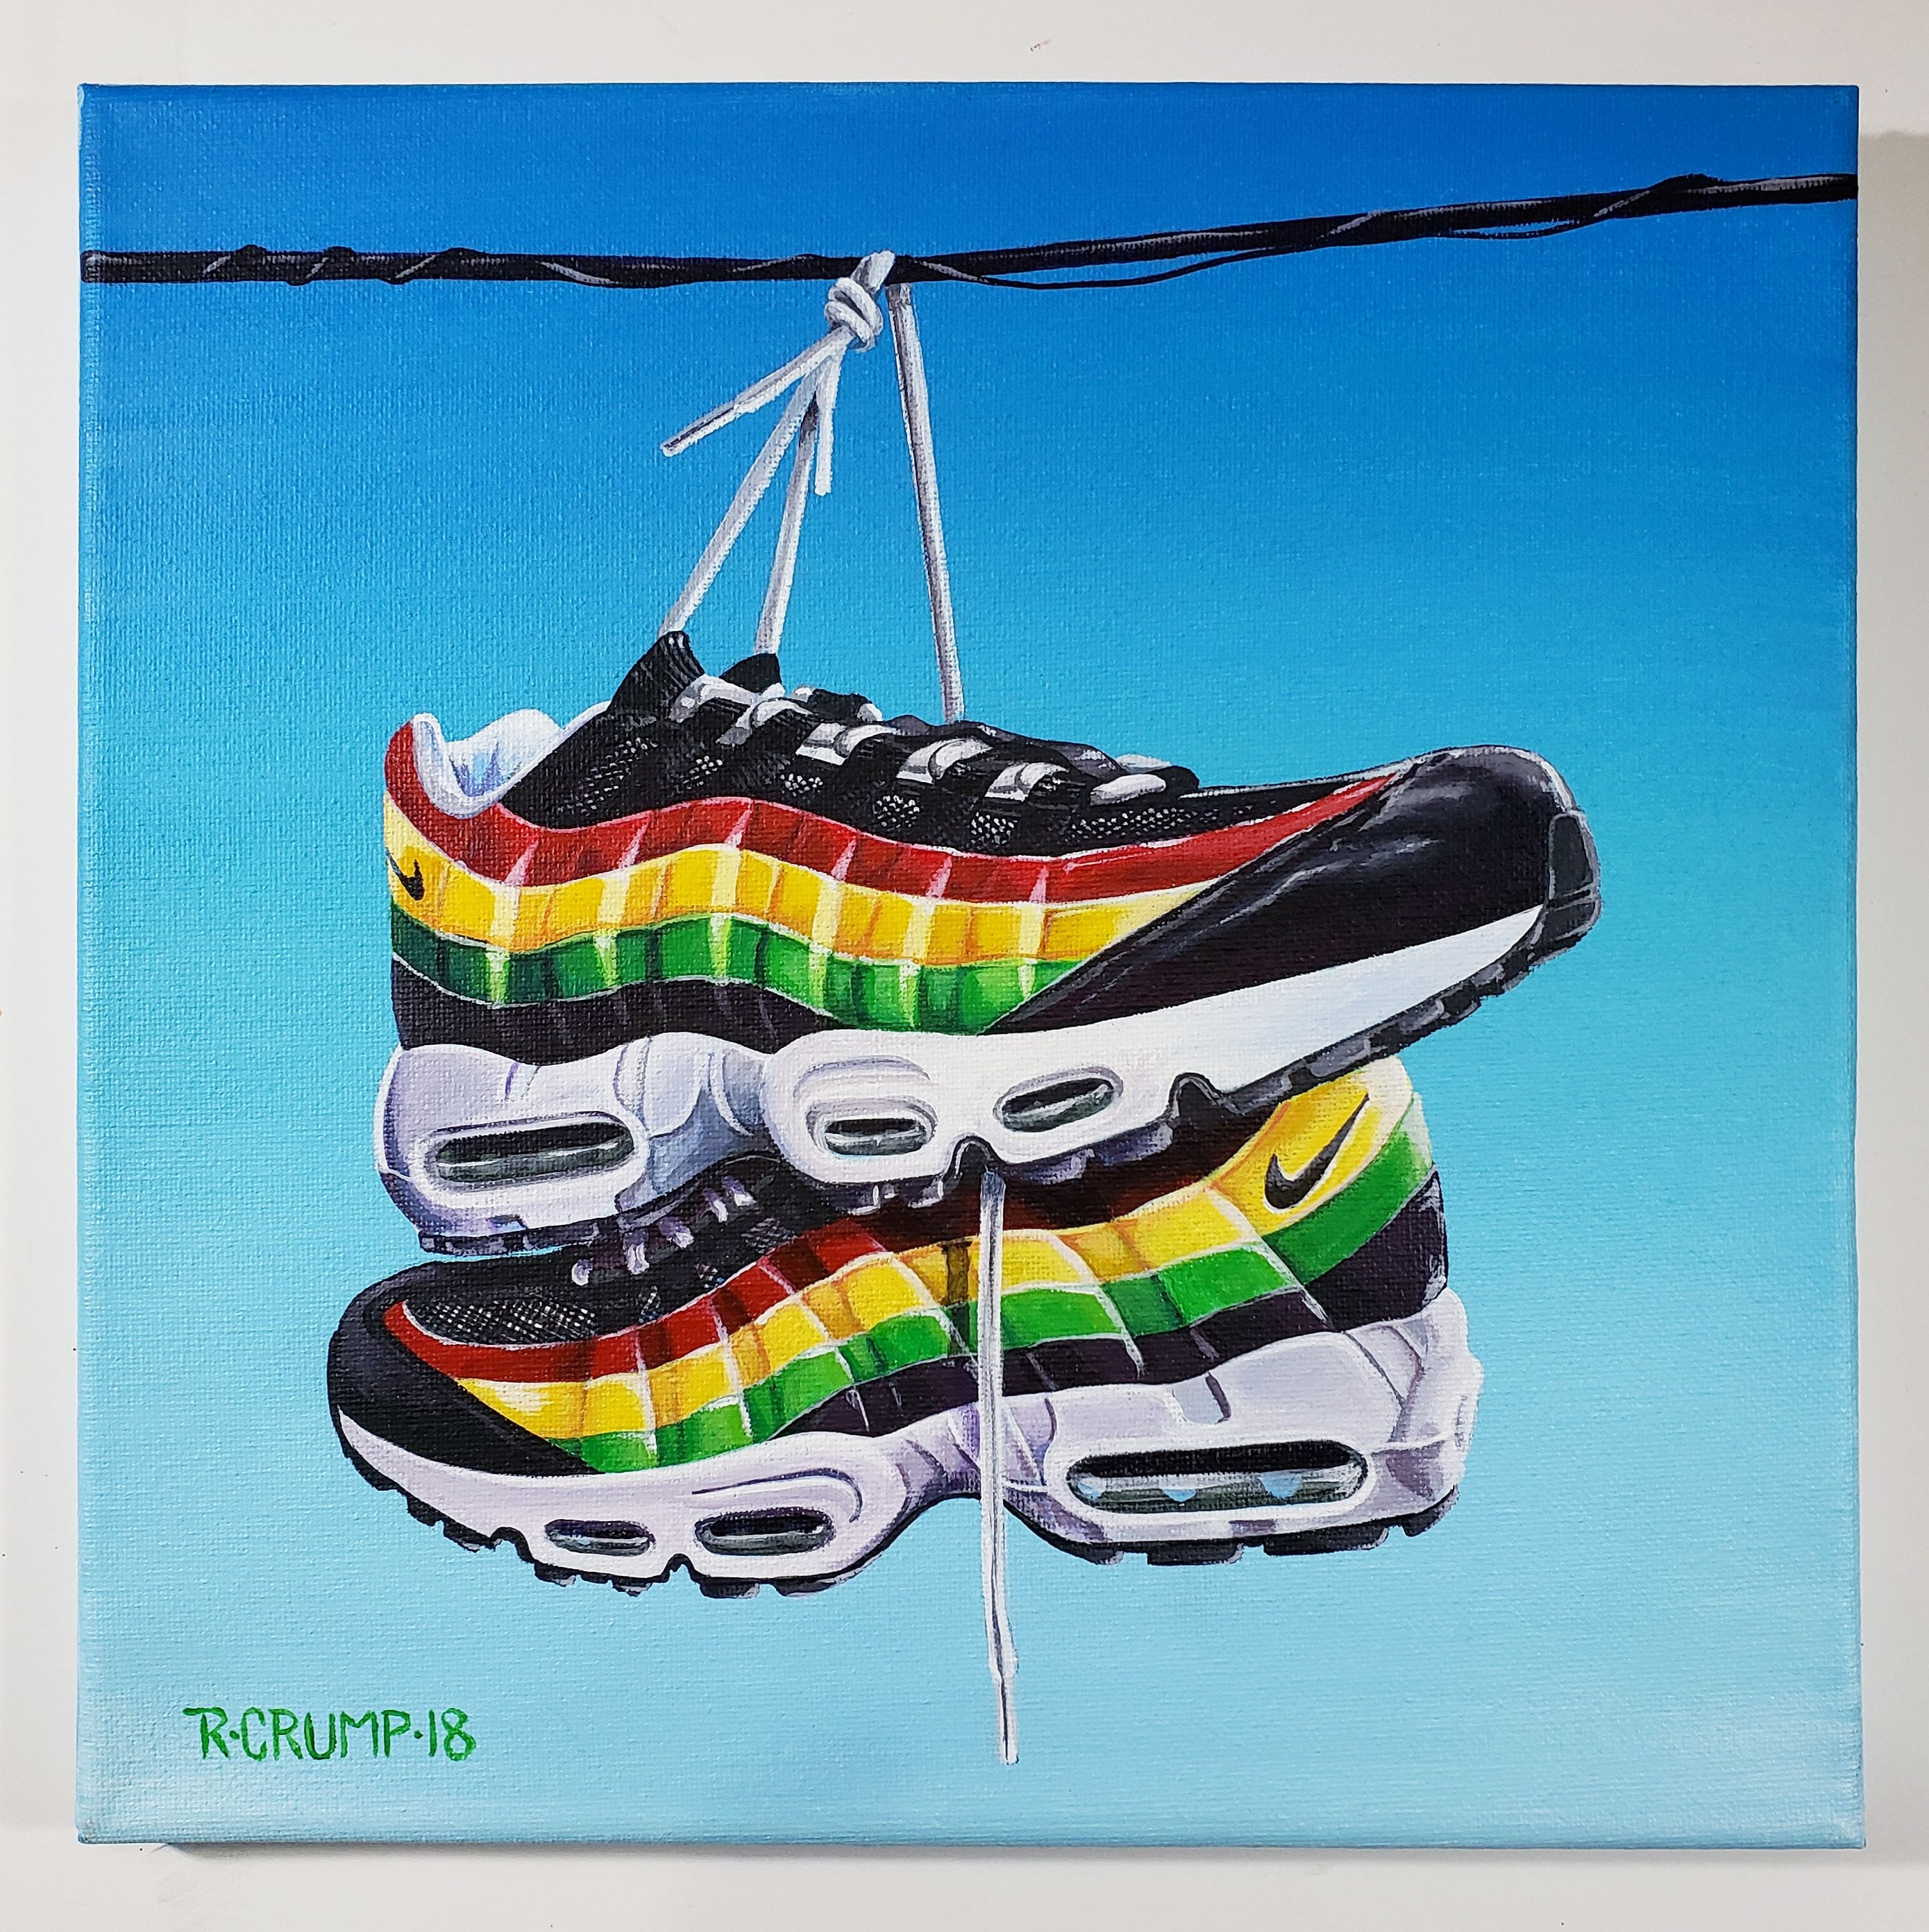 Filosófico Guinness Desagradable  Air Max 95 Sneaker Art | Sneaker art, Nike air max 95, Air max 95